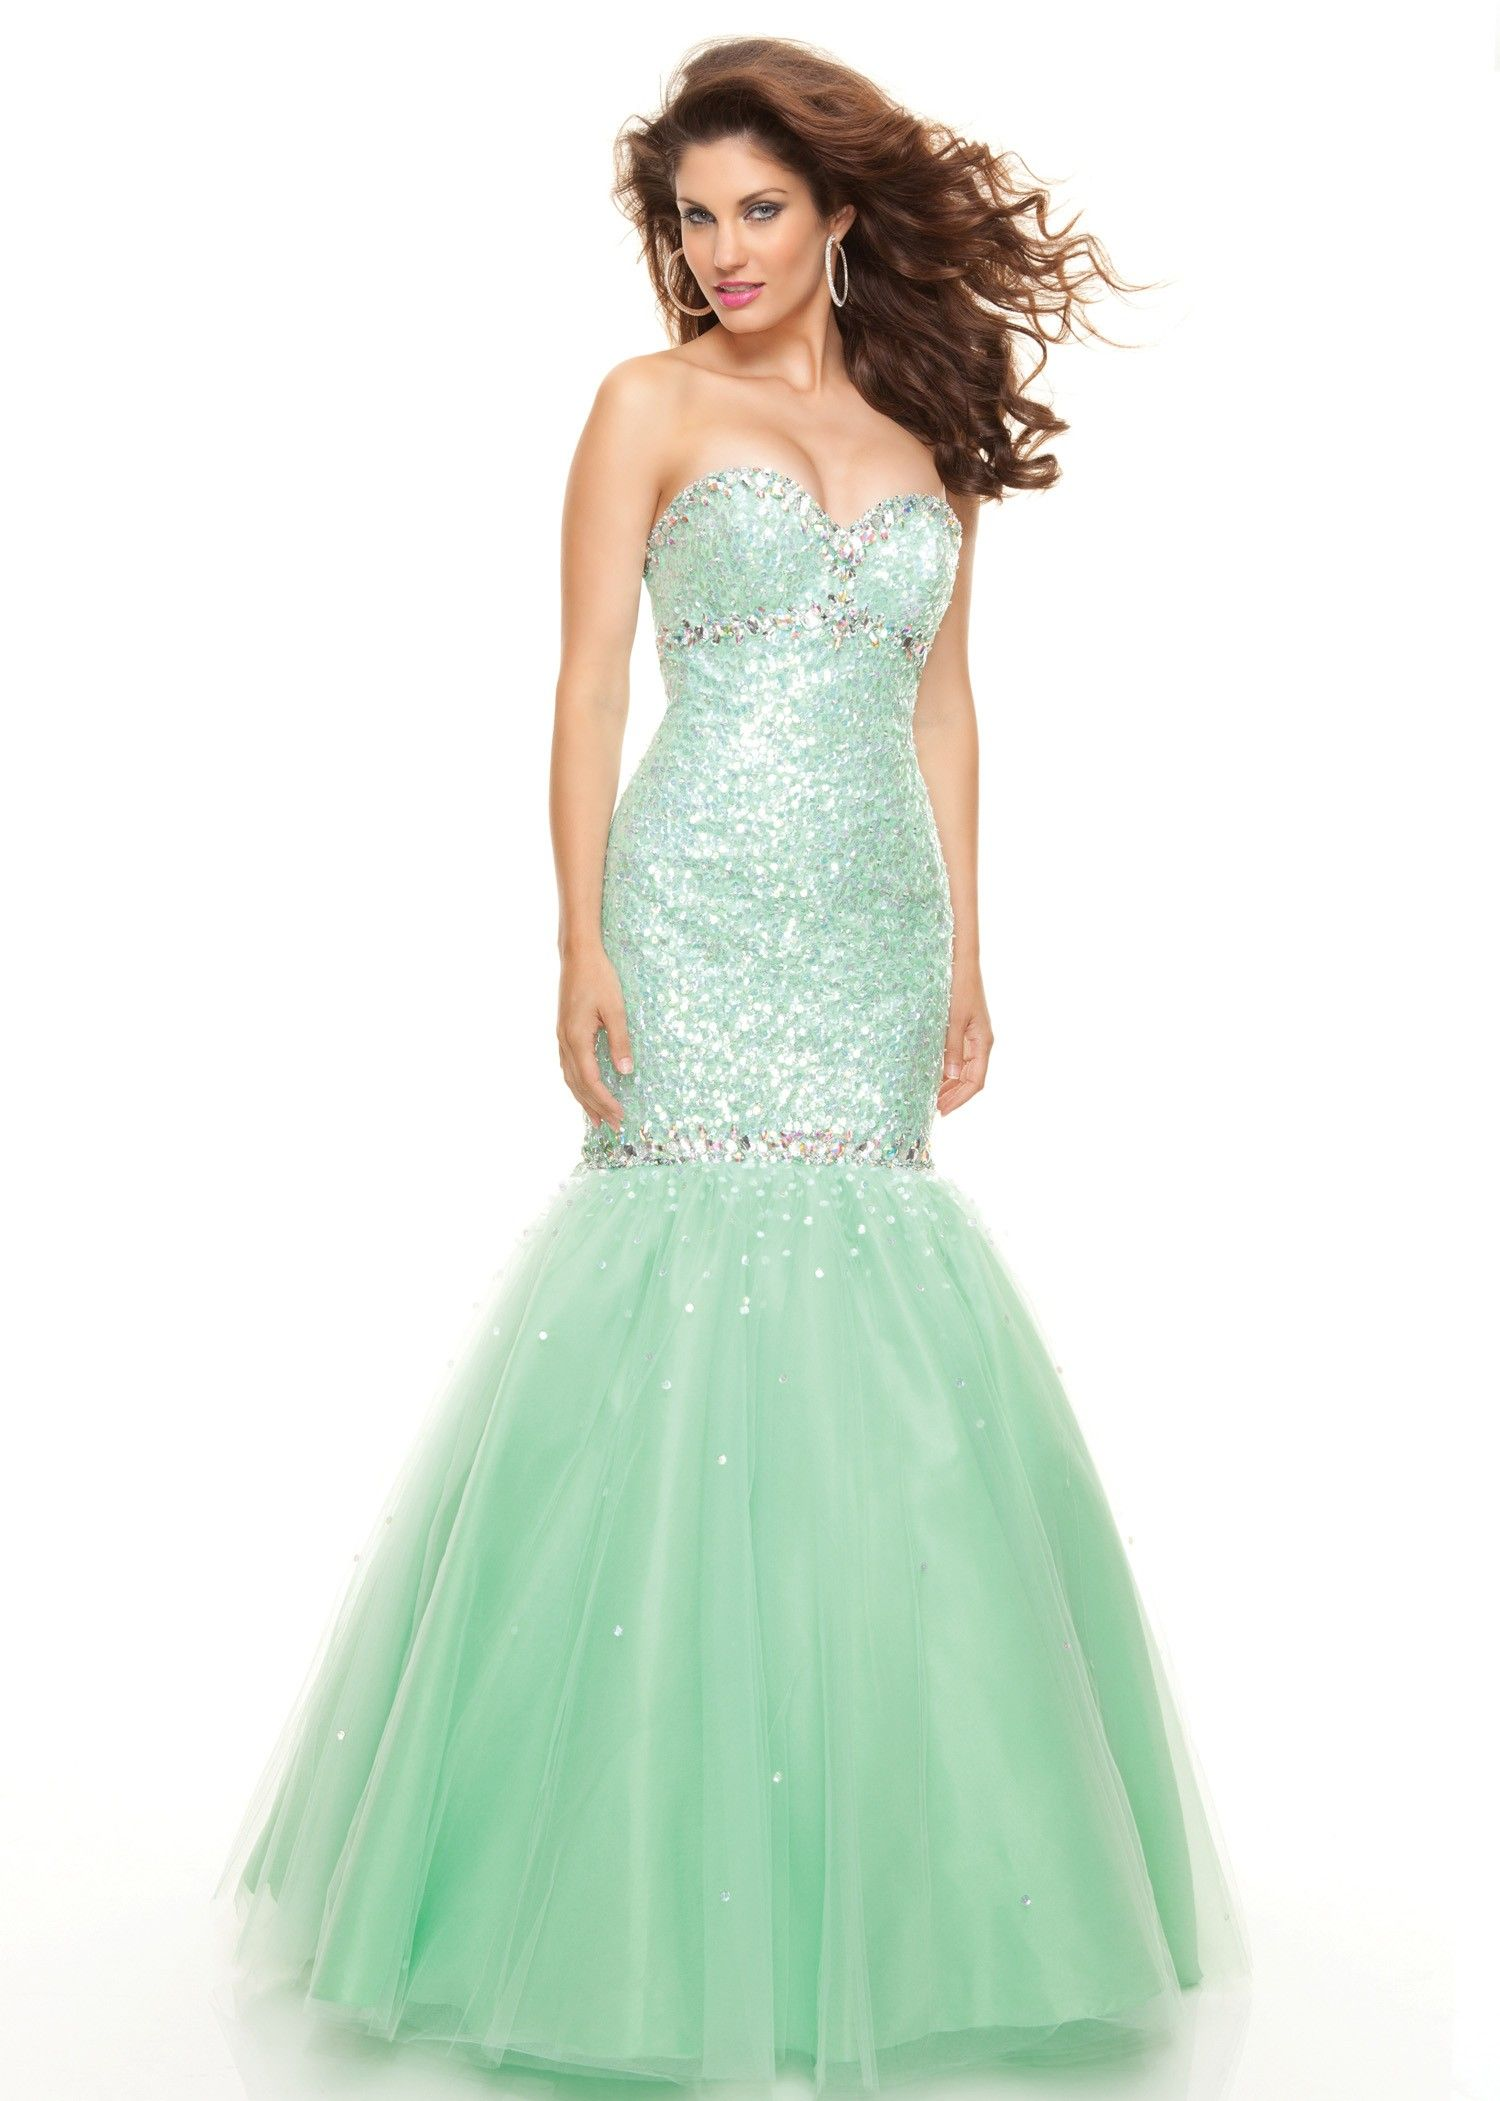 Mori Lee By Madeline Gardner Prom Dresses Rissyroos Com Beautiful Prom Dresses Prom Dresses Prom Dresses Ball Gown [ 2101 x 1500 Pixel ]